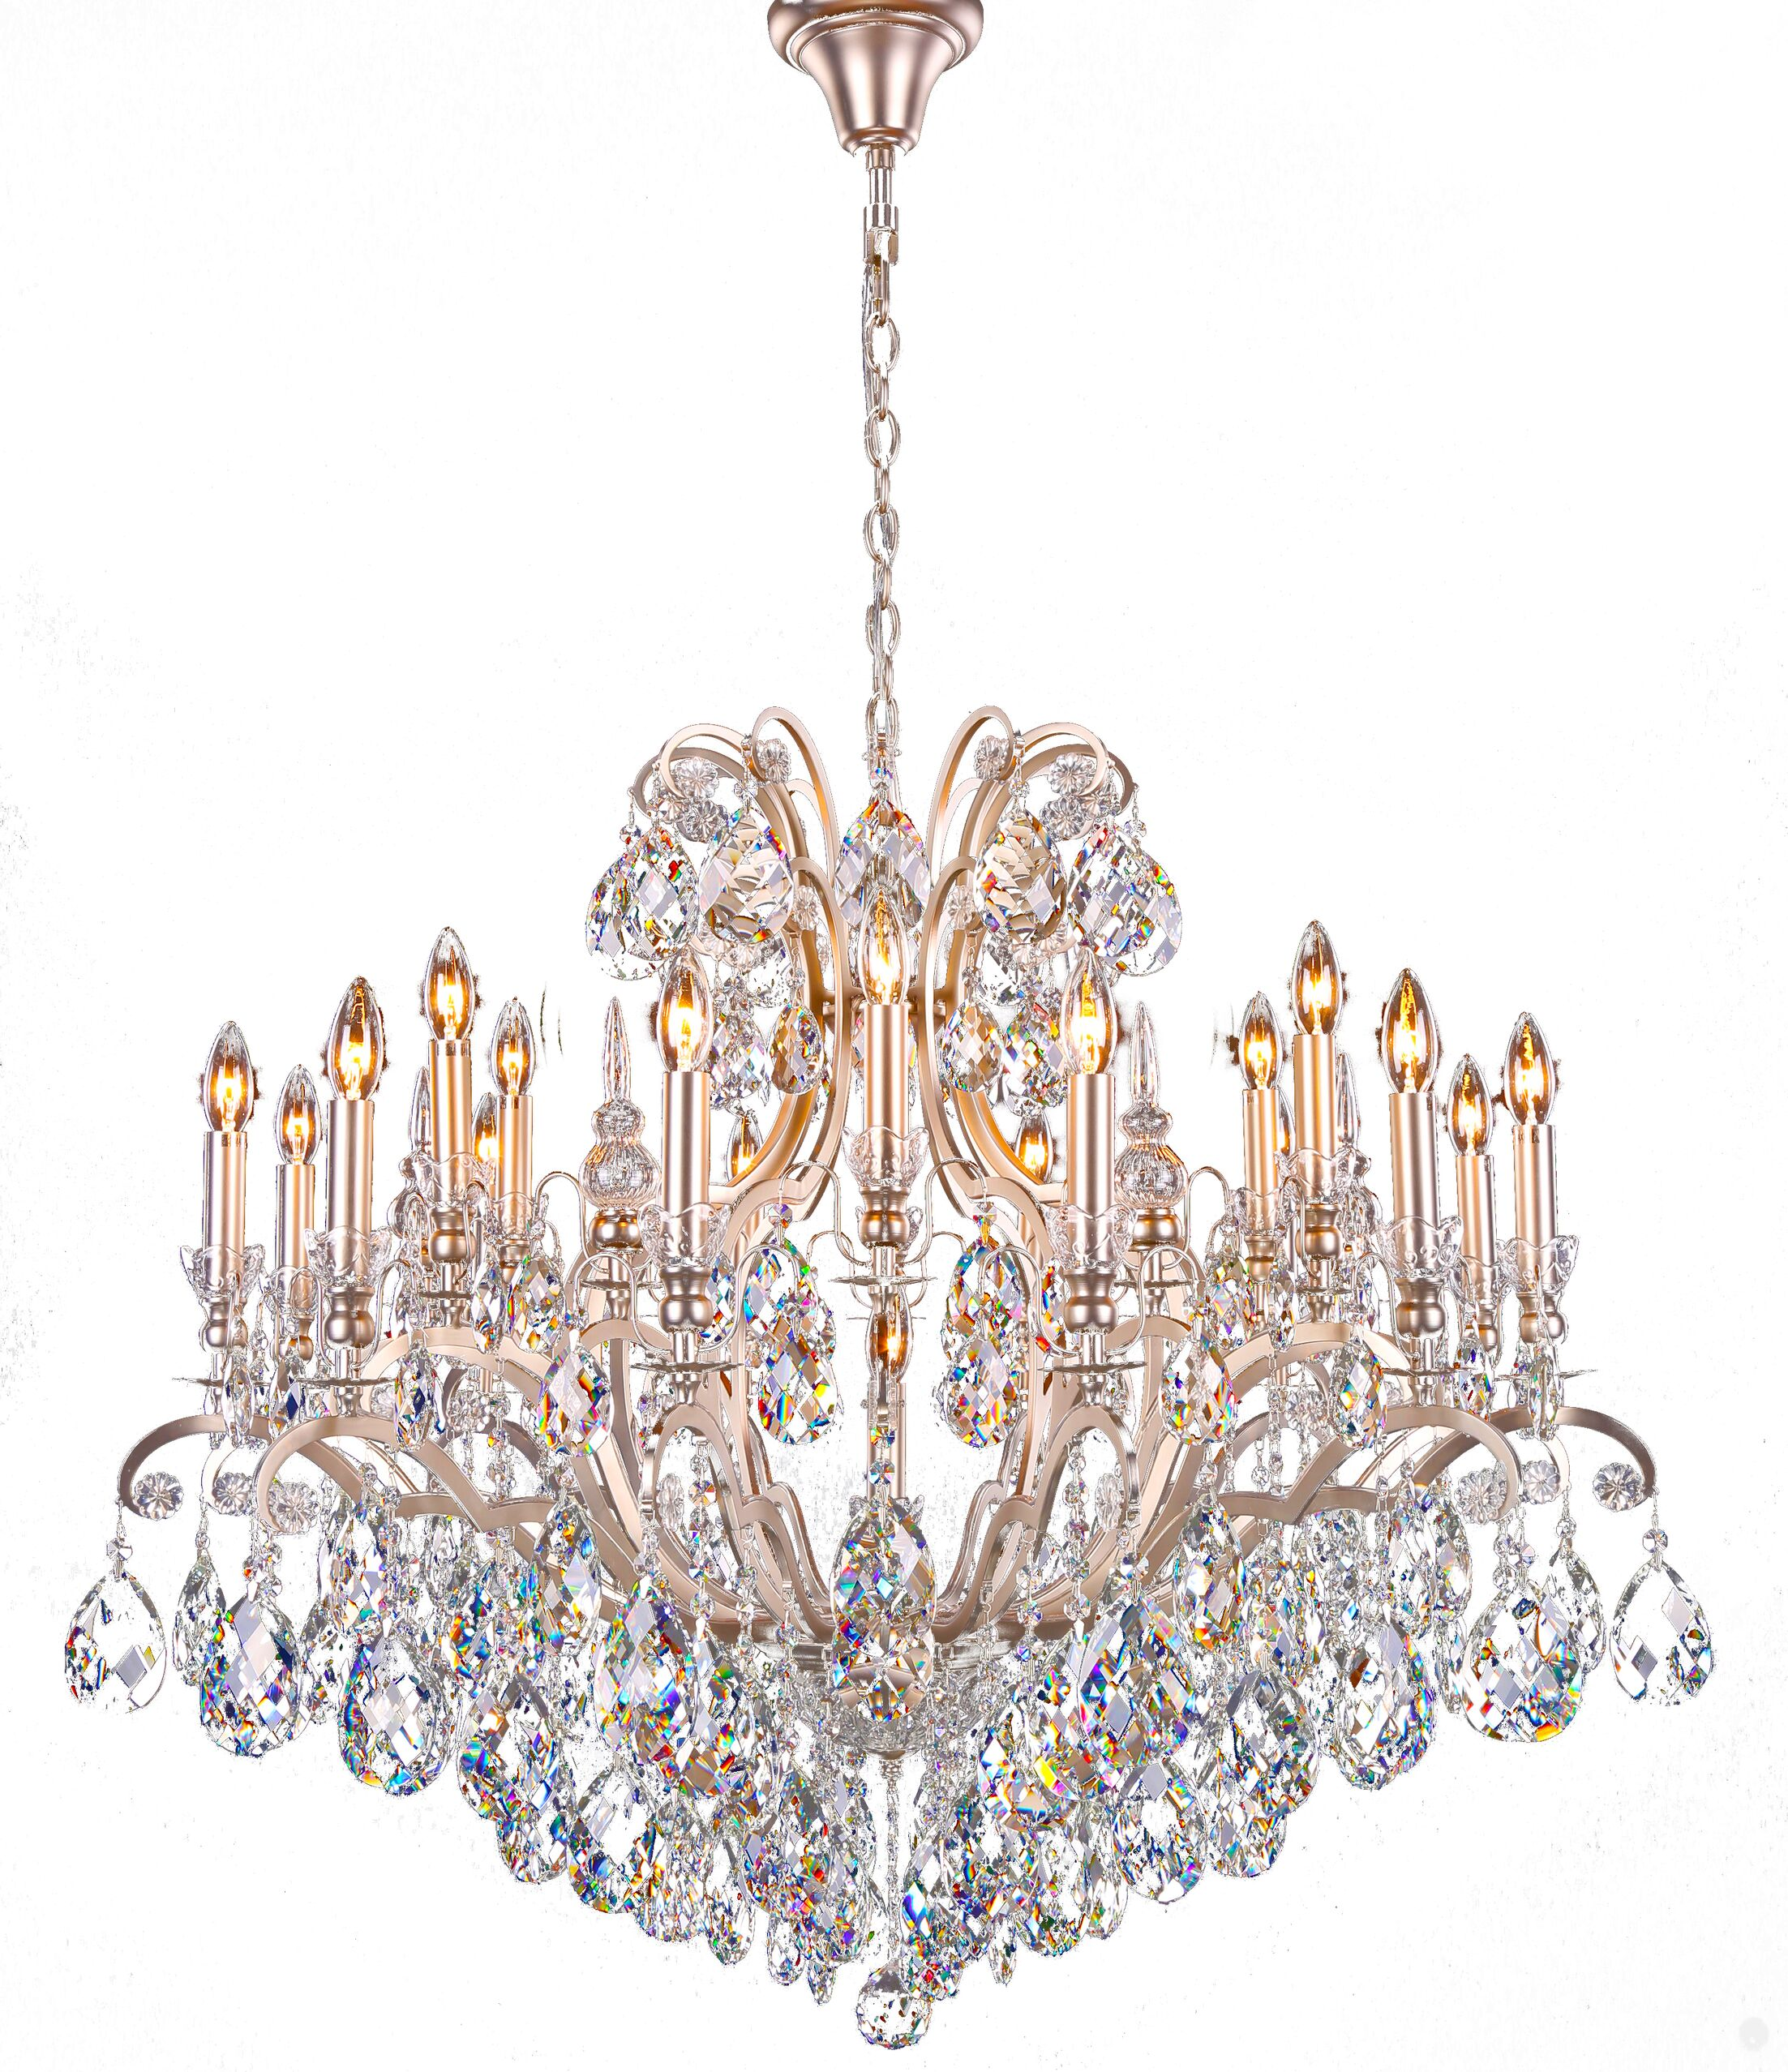 Livengood 19-Light Candle Style Chandelier Finish: Pewter